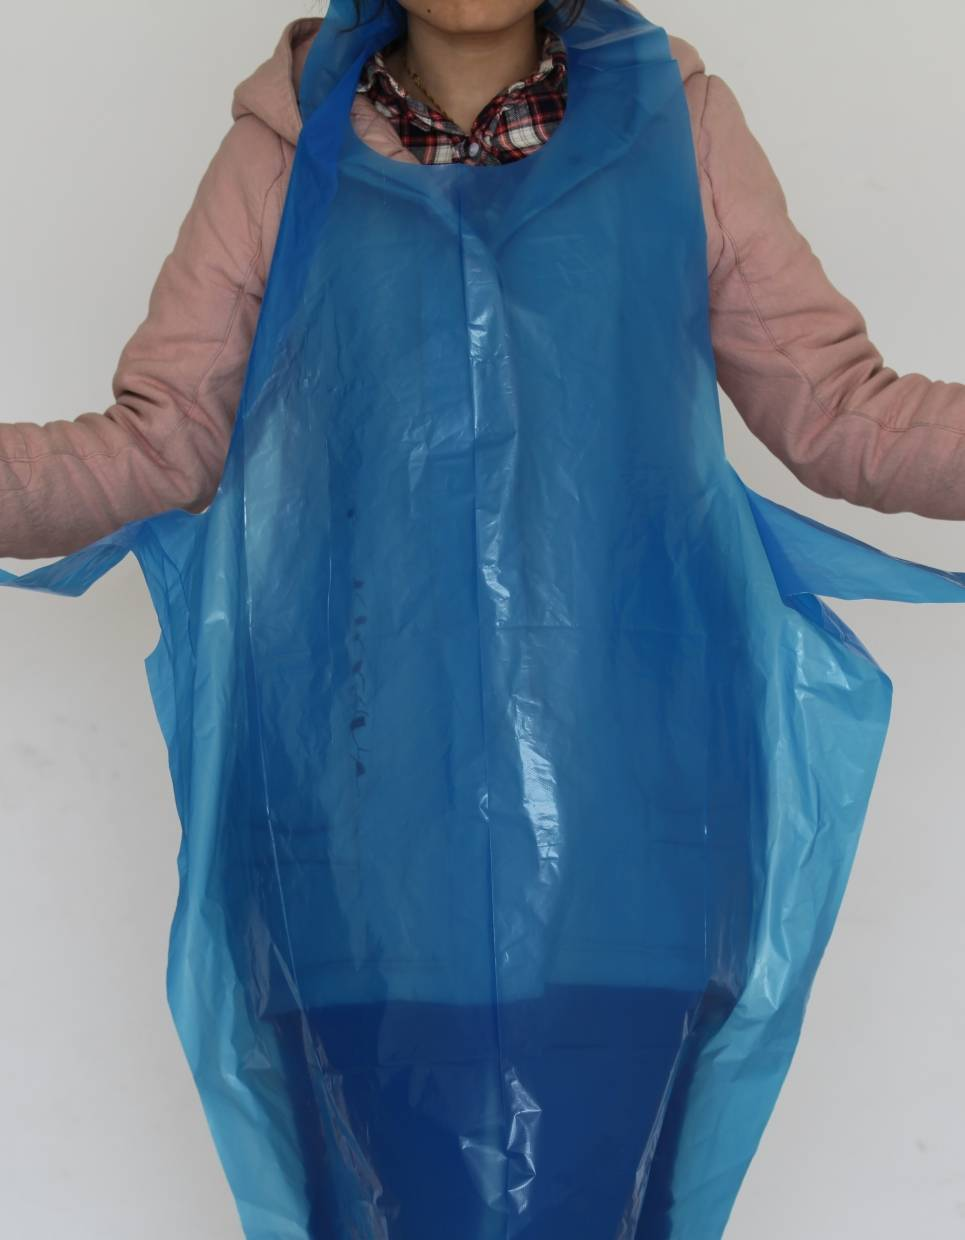 workware protective aprons